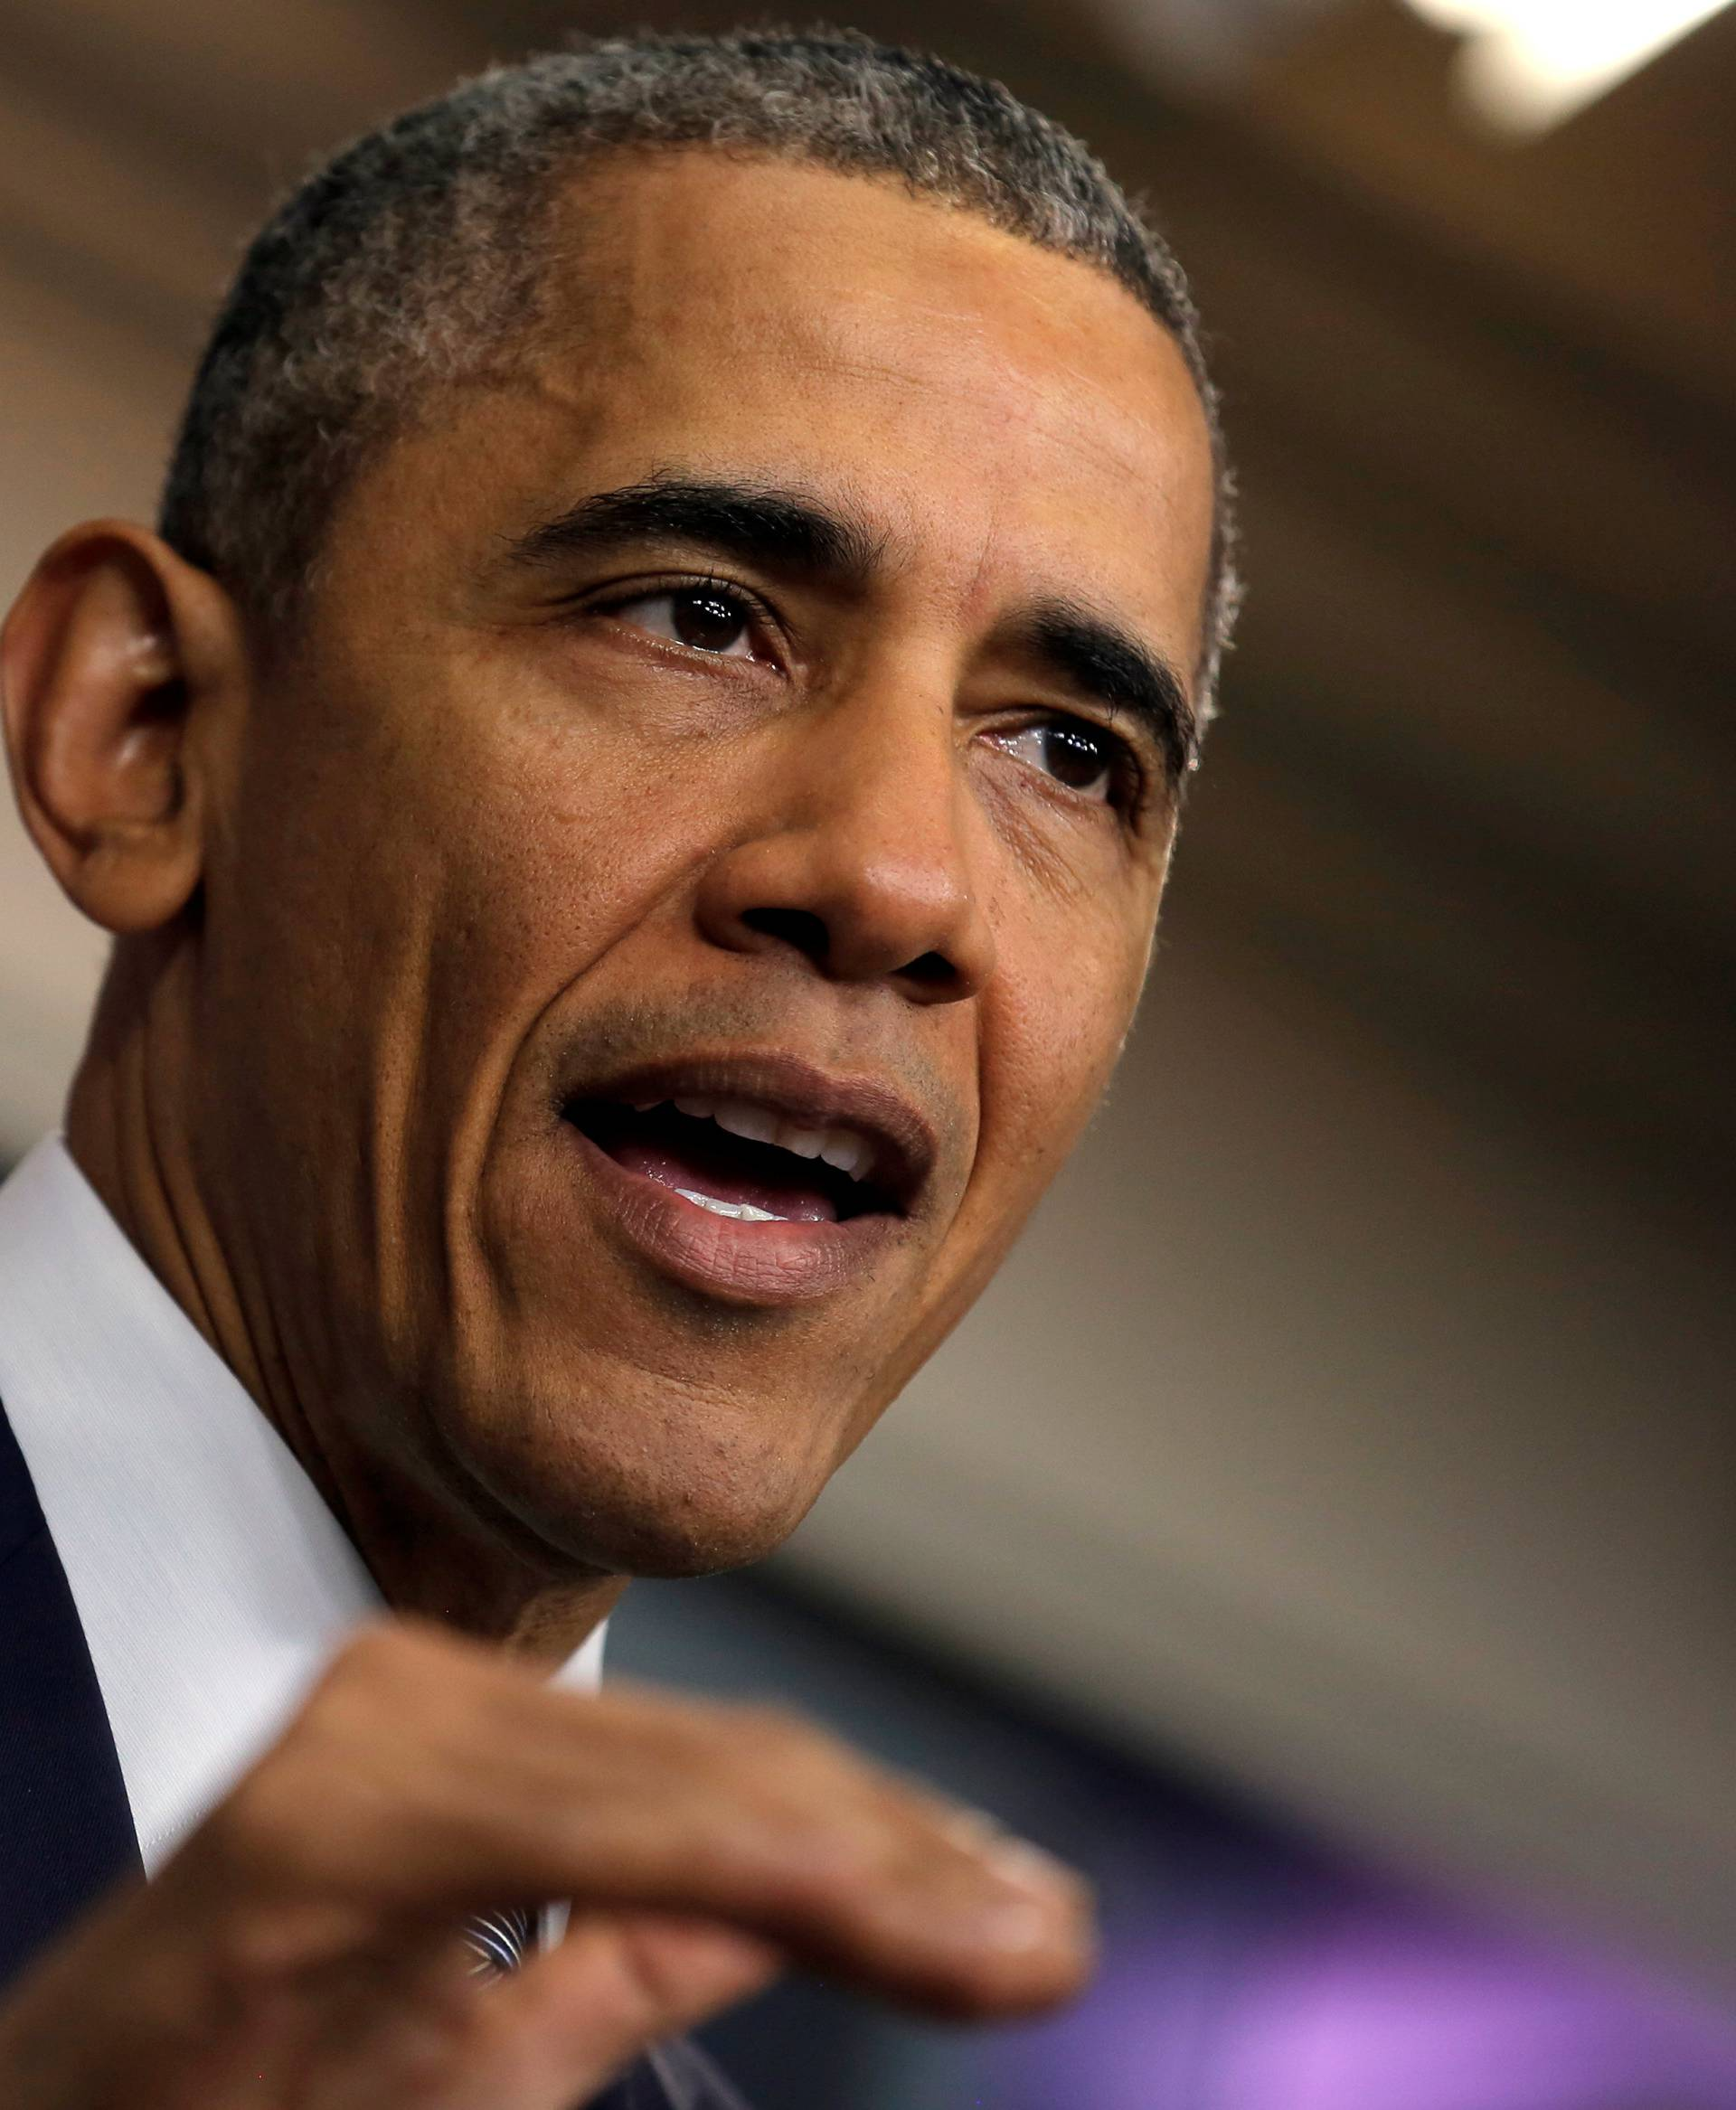 U.S. President Barack Obama delivers a statement on the economy at the press briefing room at the White House in Washington, U.S.